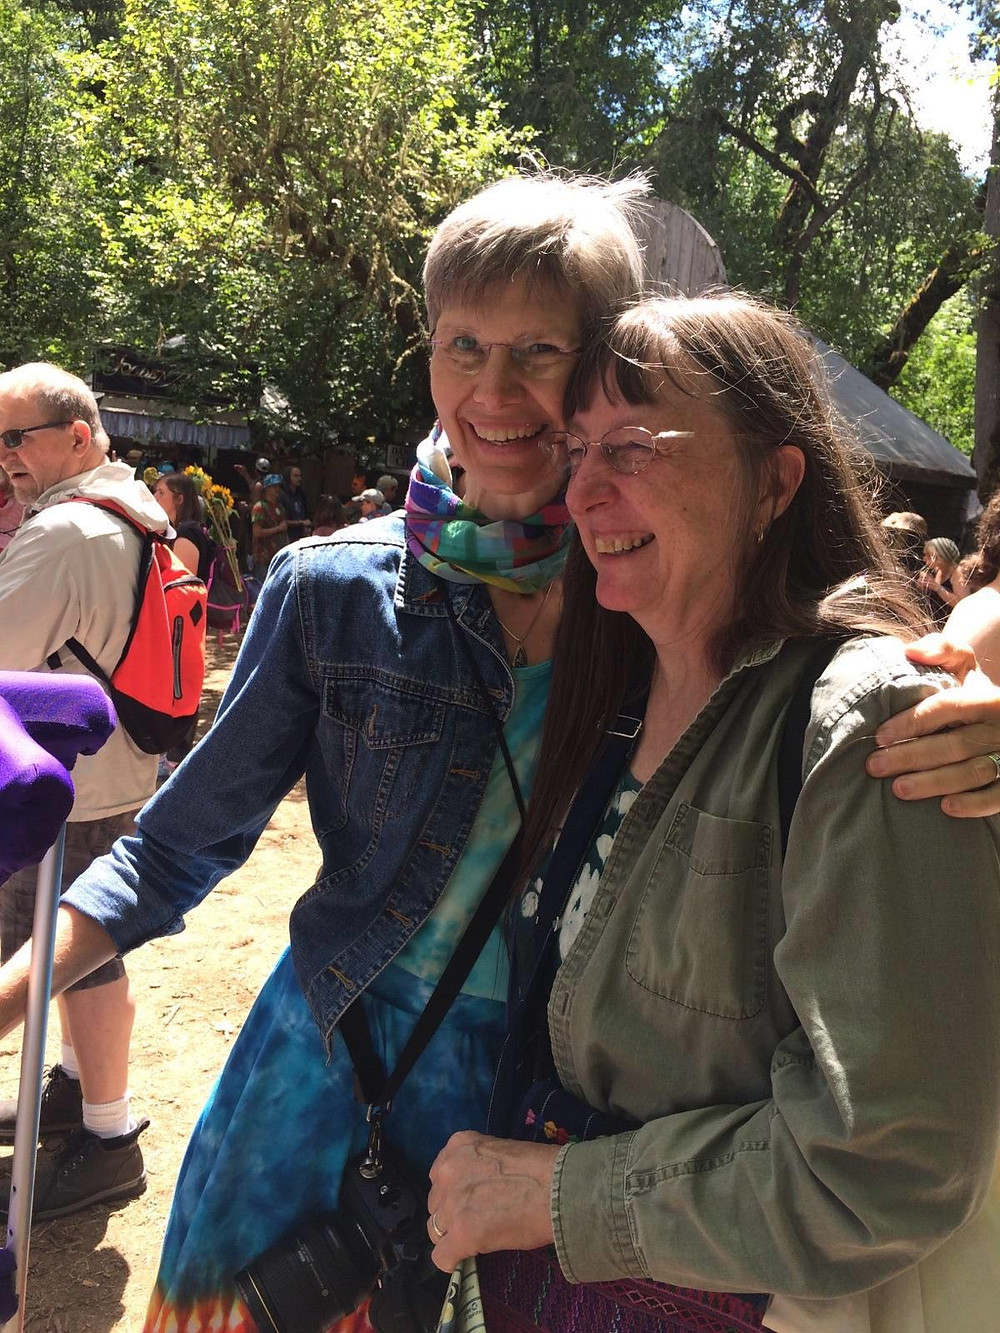 Oregon Country Fair with Jody Carter, July 2016